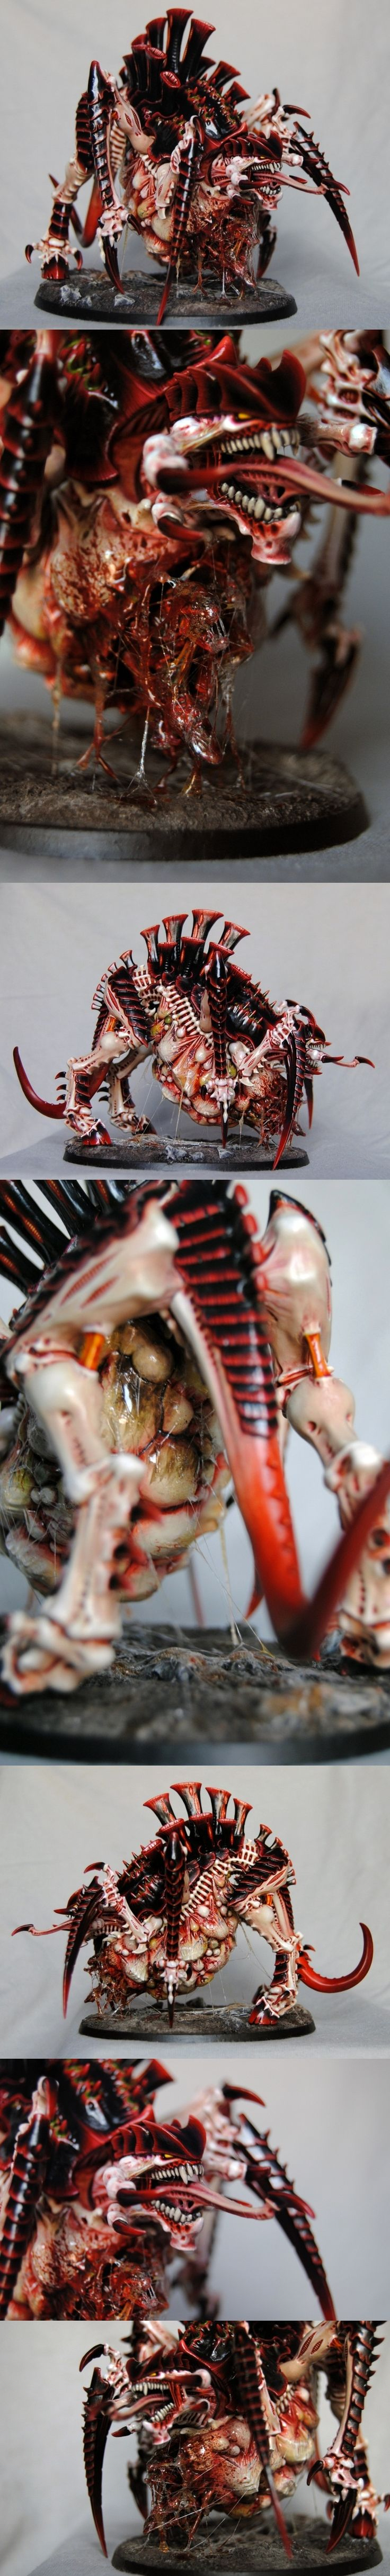 Tyranid Tervigon - different views Idk what that is, but it looks rad & metal as fuck